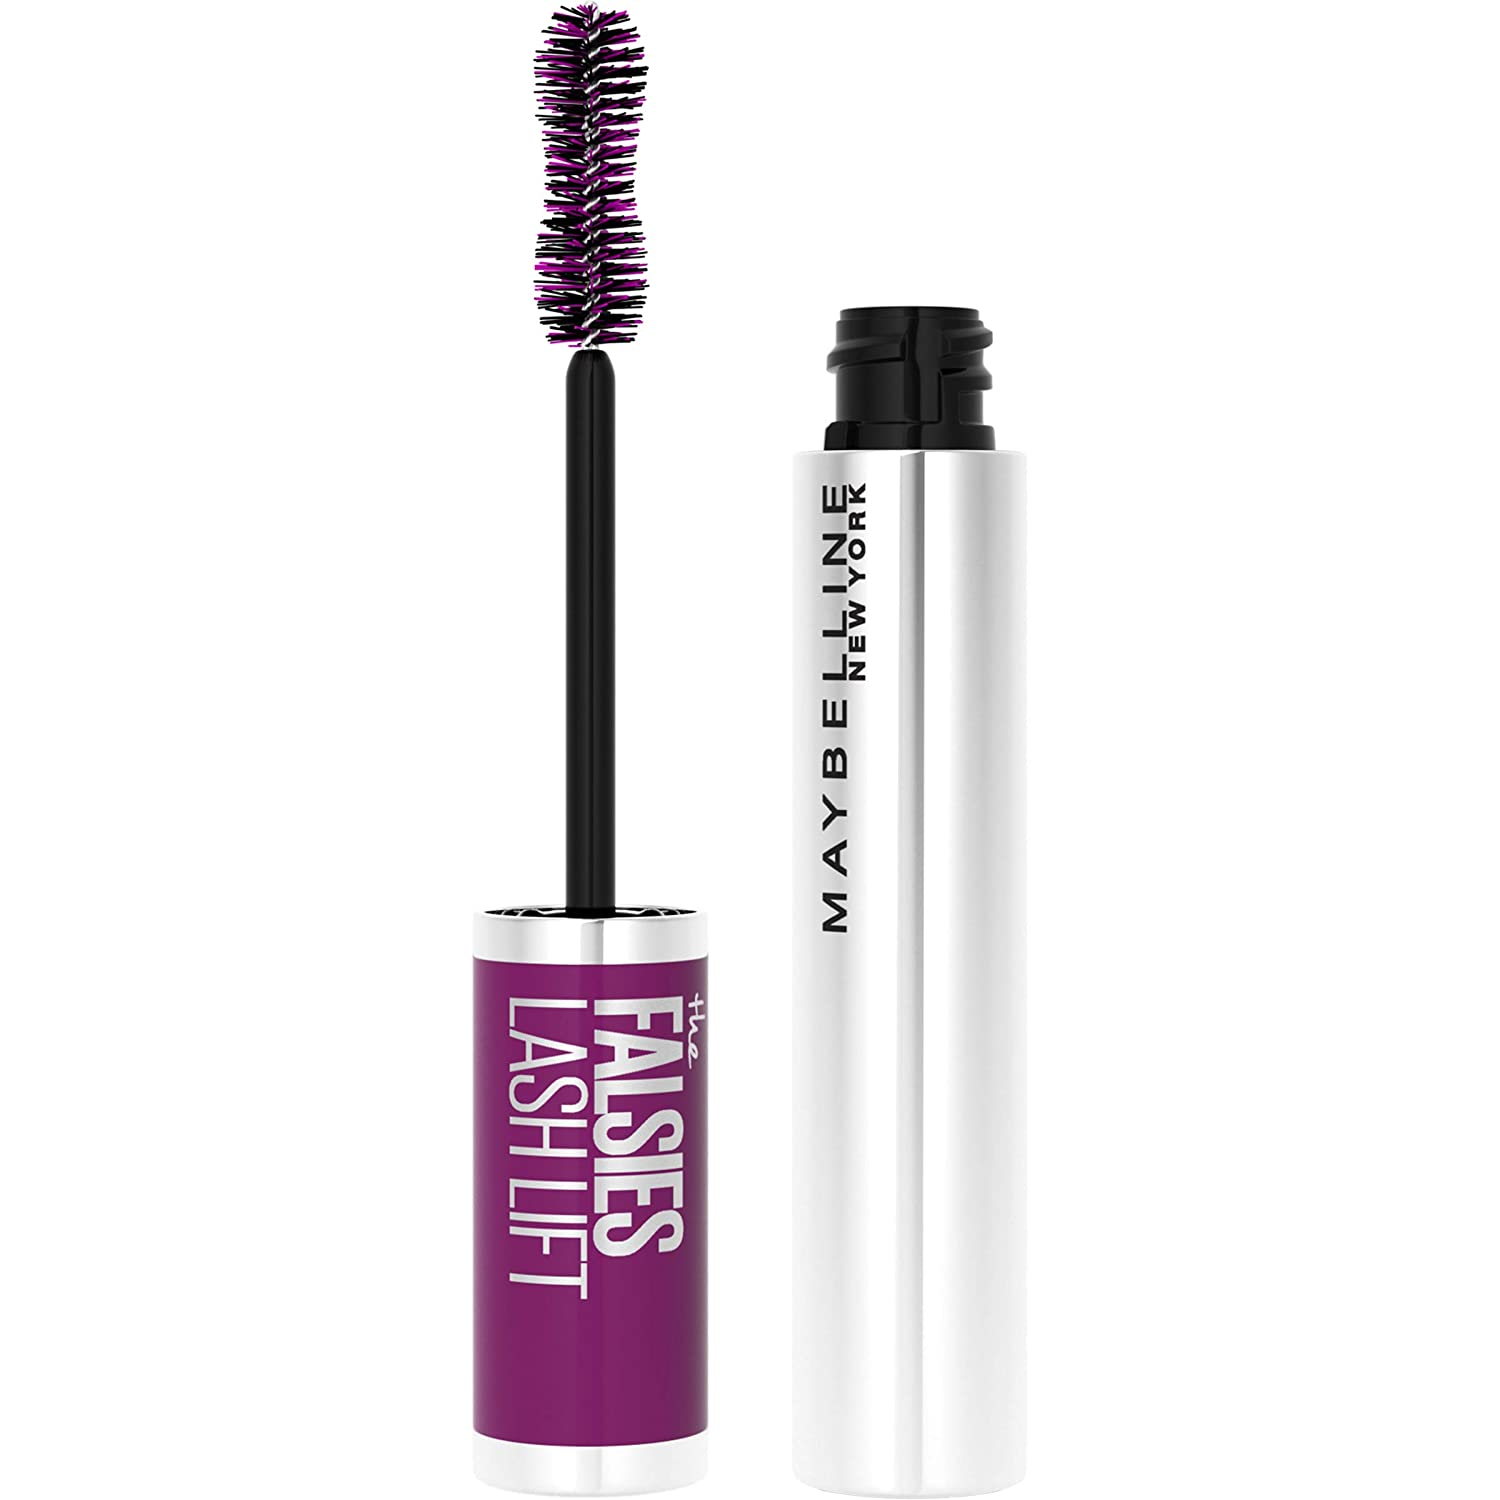 Maybelline the Falsies Lash Lift Washable Mascara Volumizing, Lengthening, Lifting, Curling, Multiplying, Eye Makeup, Blackest Black, 0.32 Fl. Oz